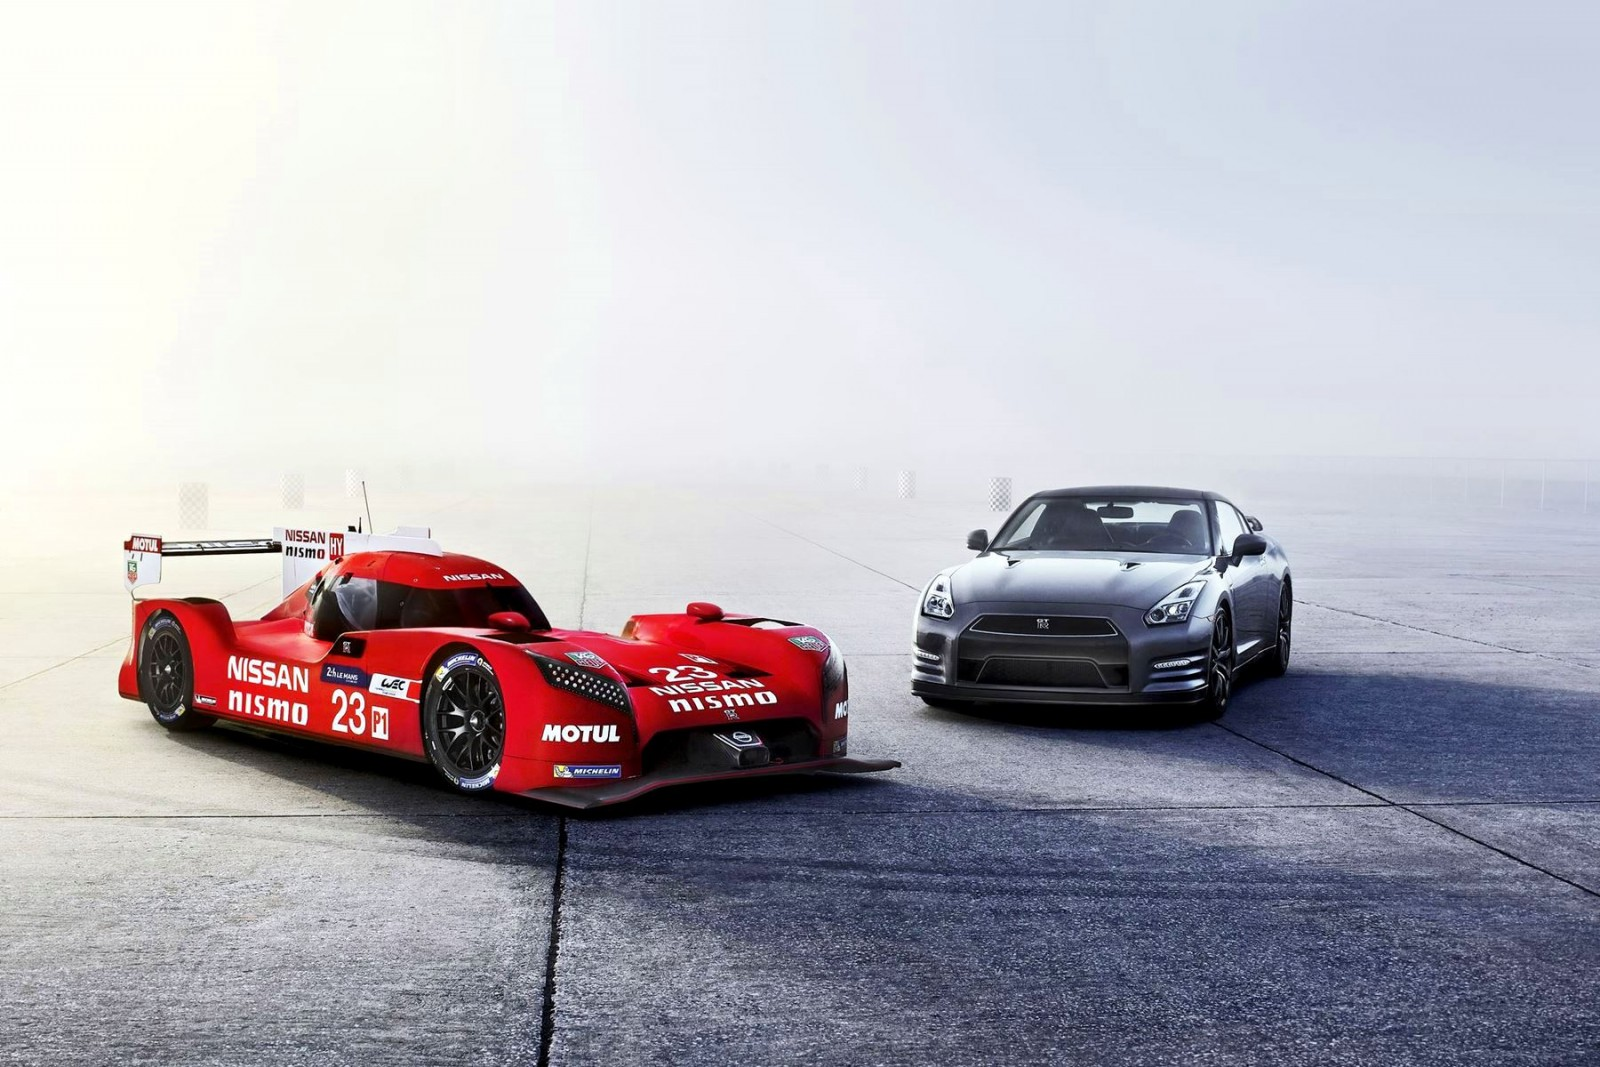 Nissan GT-R and Nissan GT-R LM NISMO